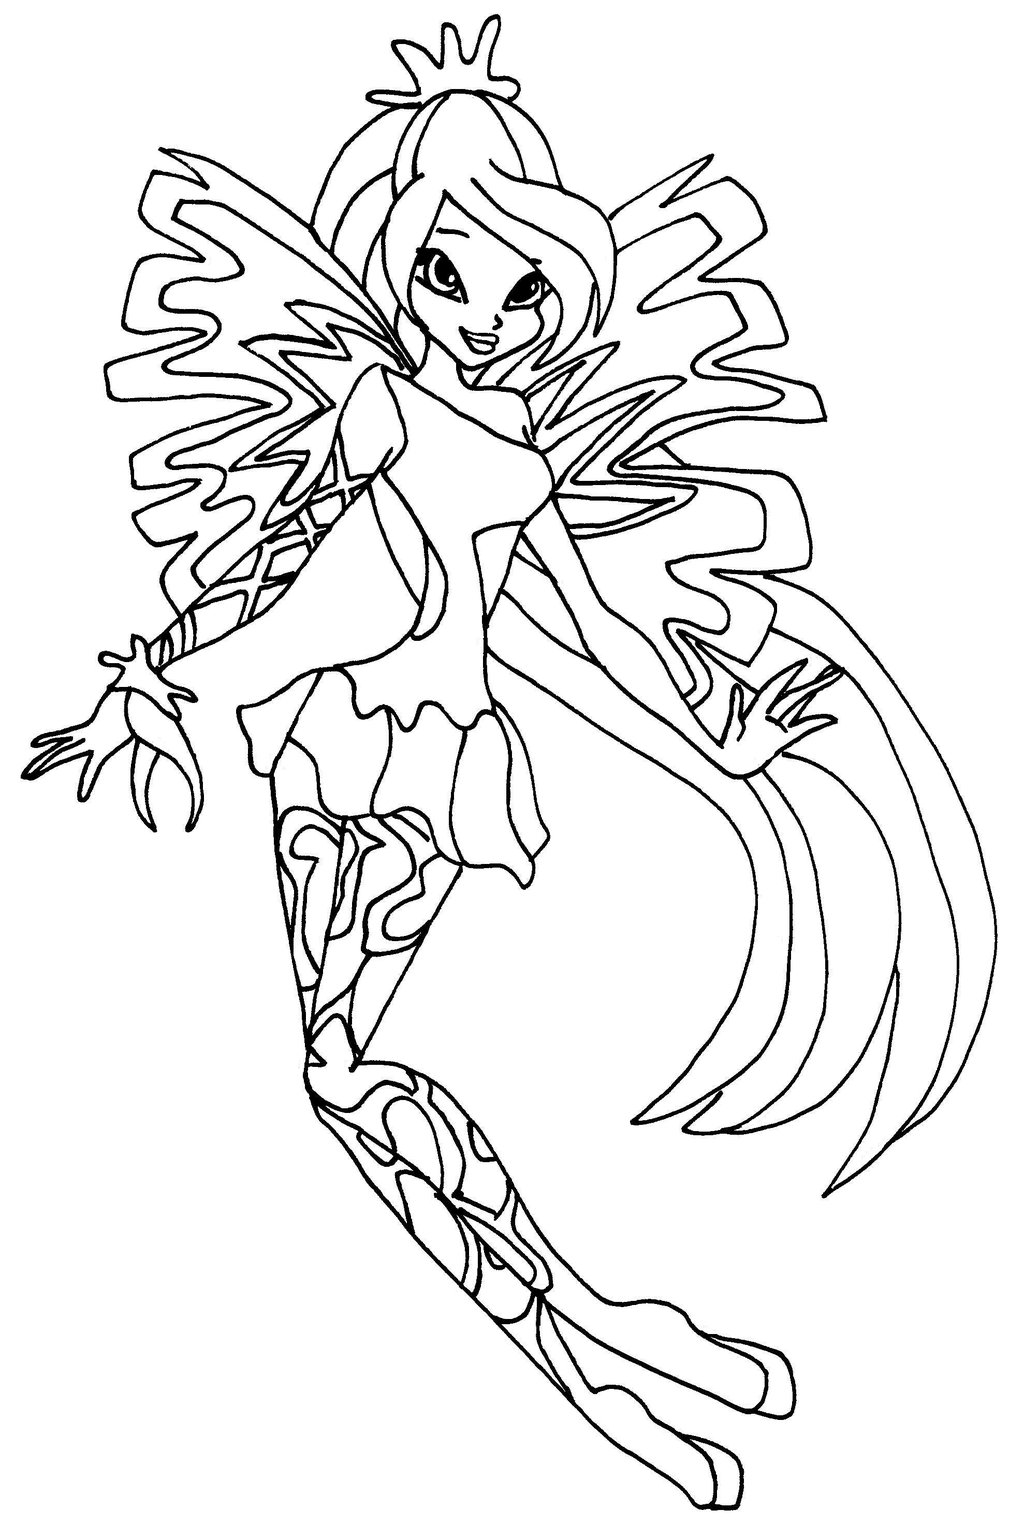 1024x1524 Winx Club Bloom Sirenix Coloring Pages Locuri De Vizitat